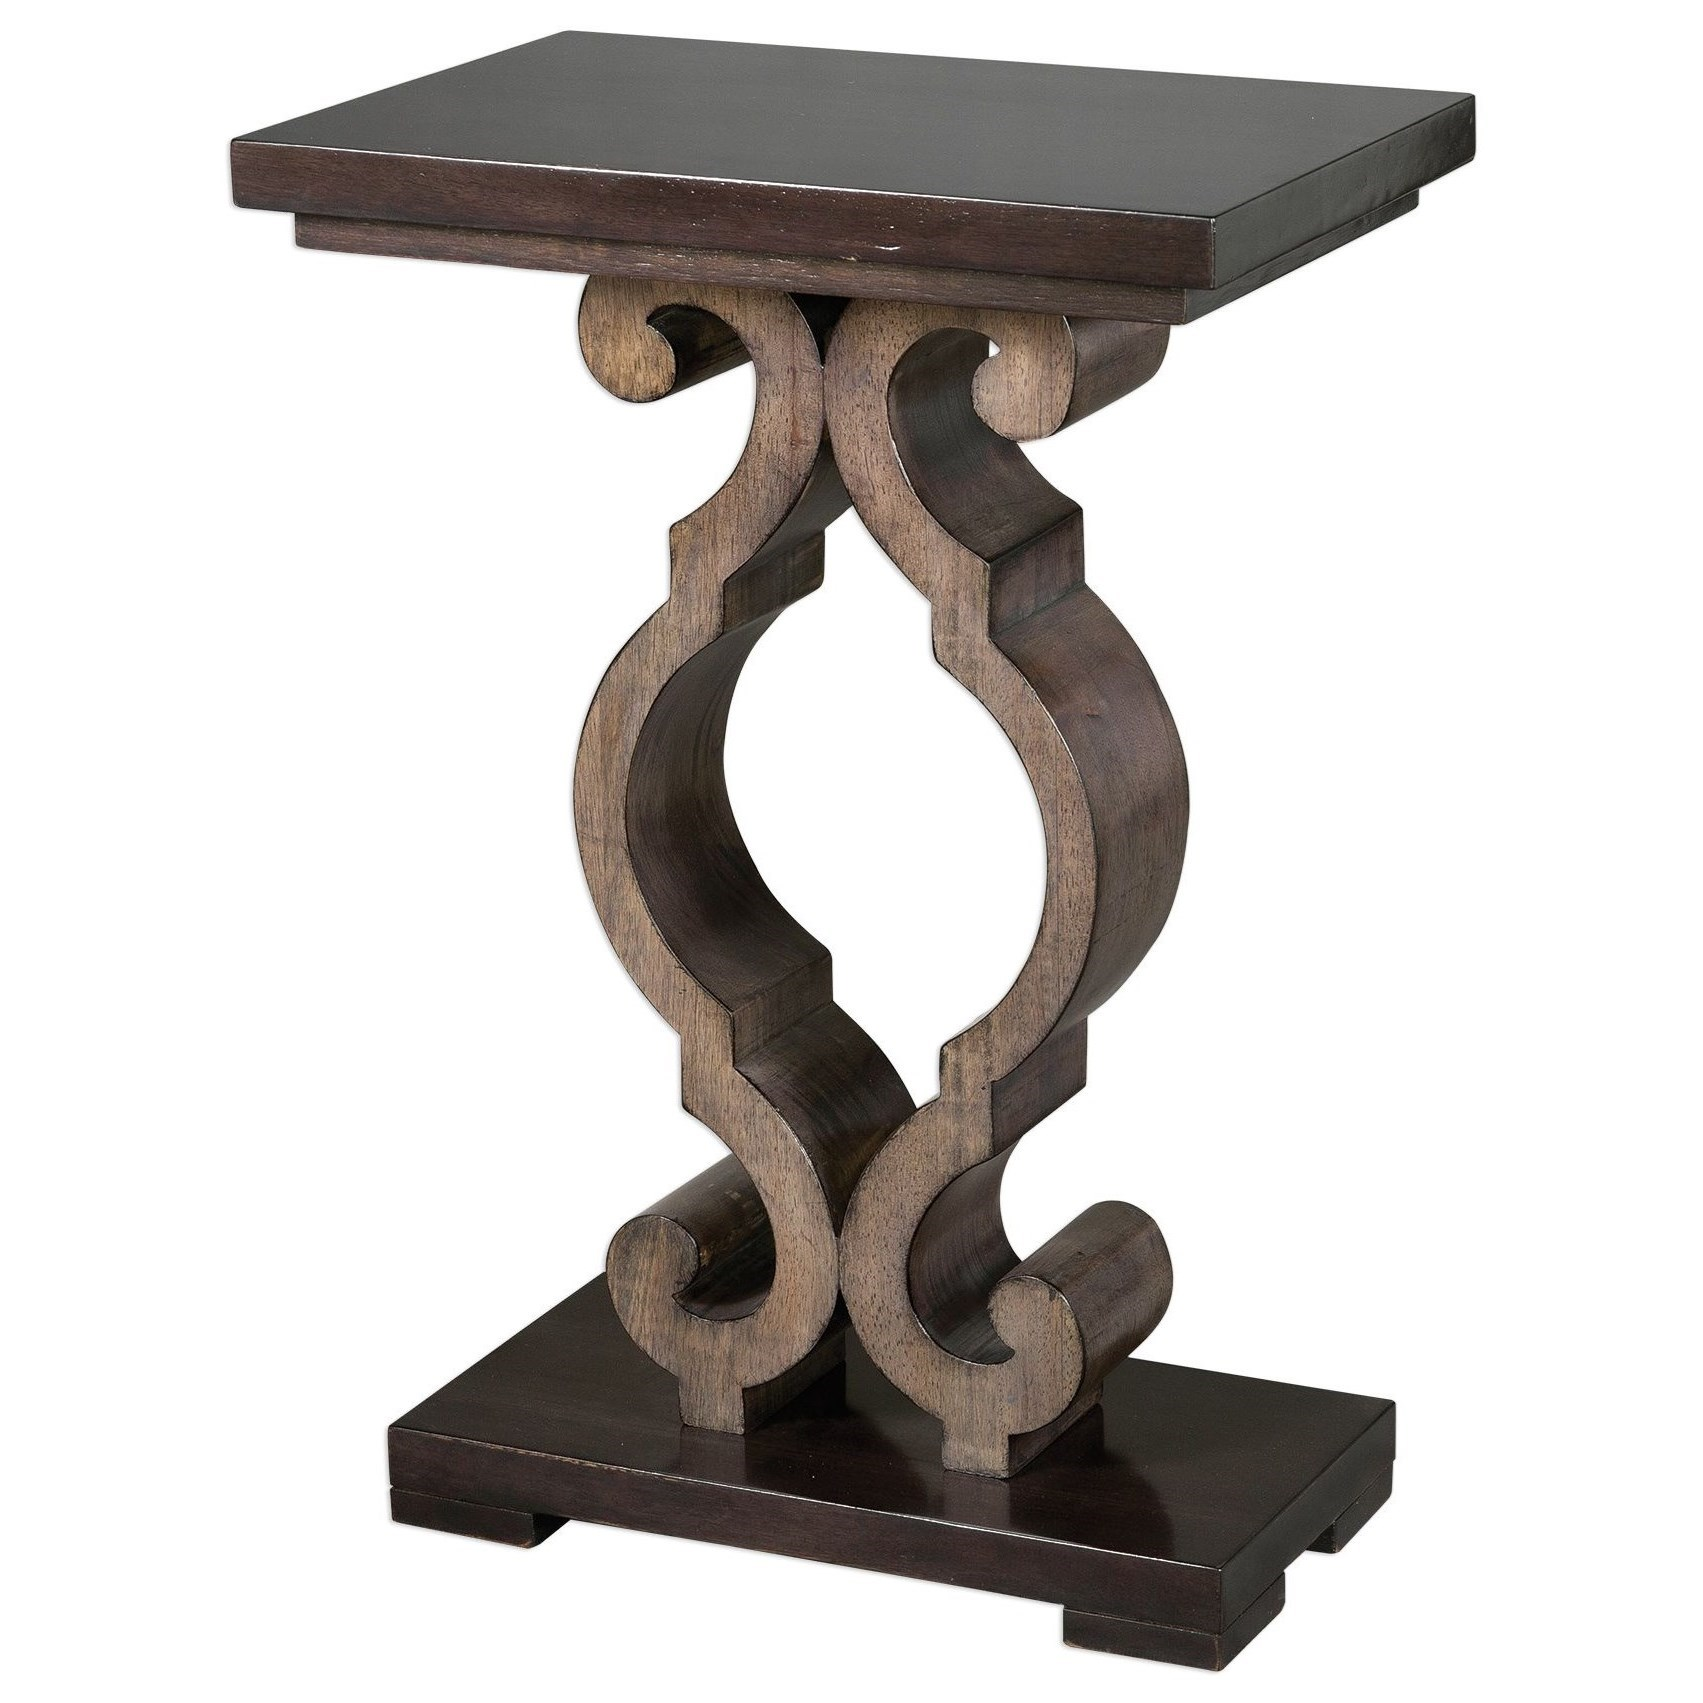 Accent Furniture - Occasional Tables Parina Ebony Accent Table by Uttermost at Factory Direct Furniture